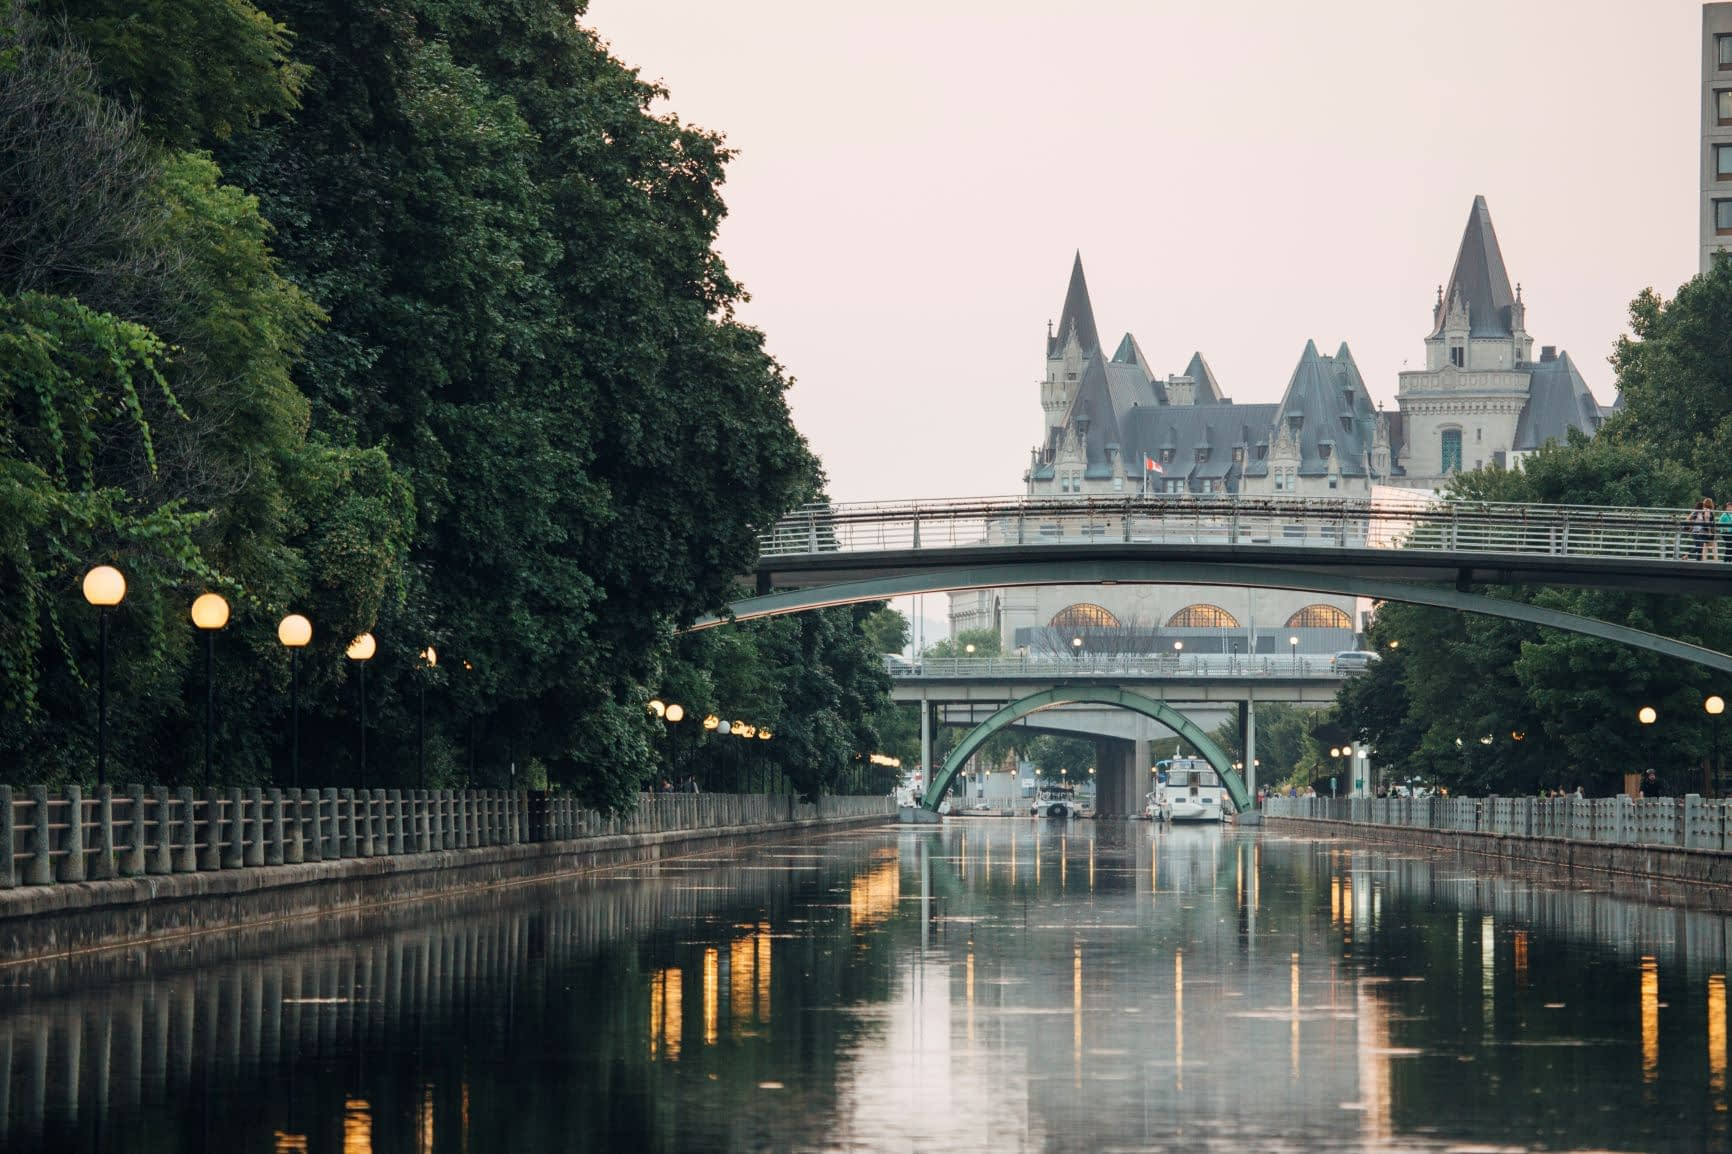 Best Ways to Experience the Rideau Canal in Ottawa